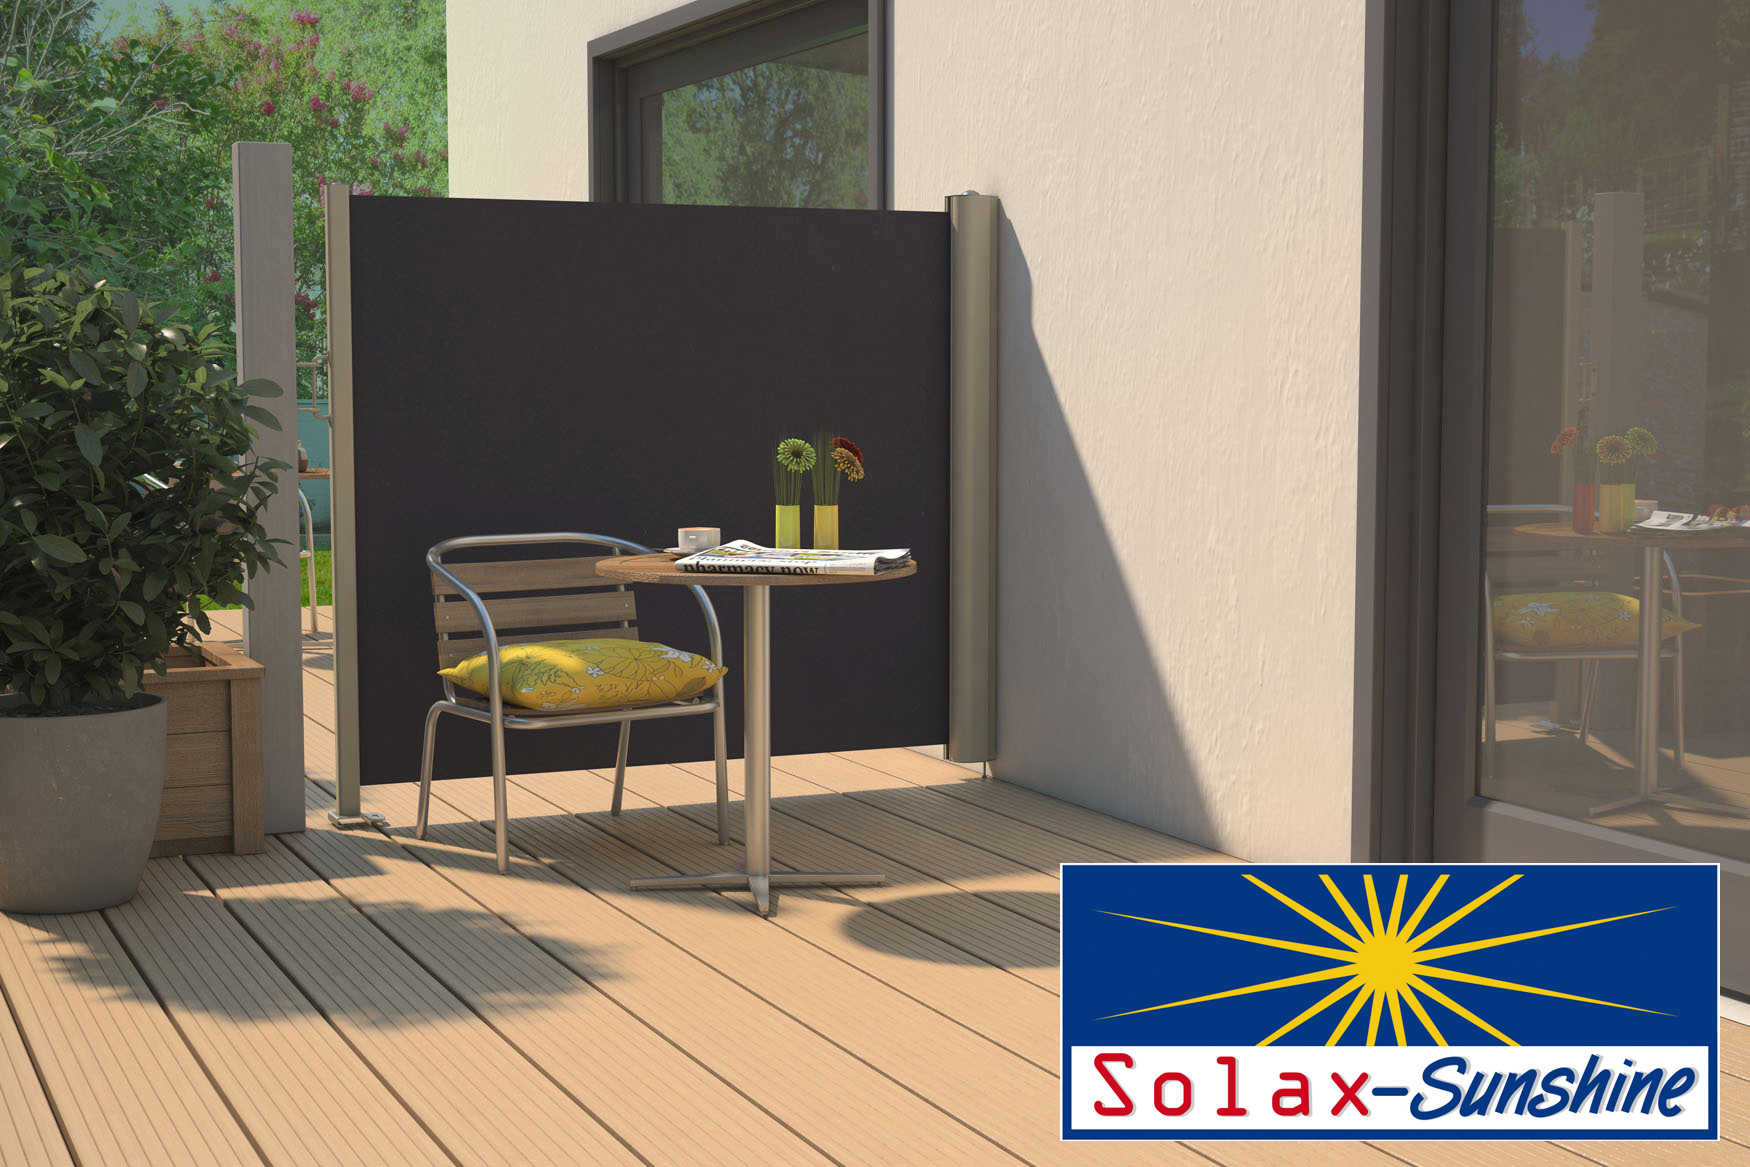 solax seitenmarkise f r terrasse oder balkon markisen sonnensegel garten rasen und. Black Bedroom Furniture Sets. Home Design Ideas